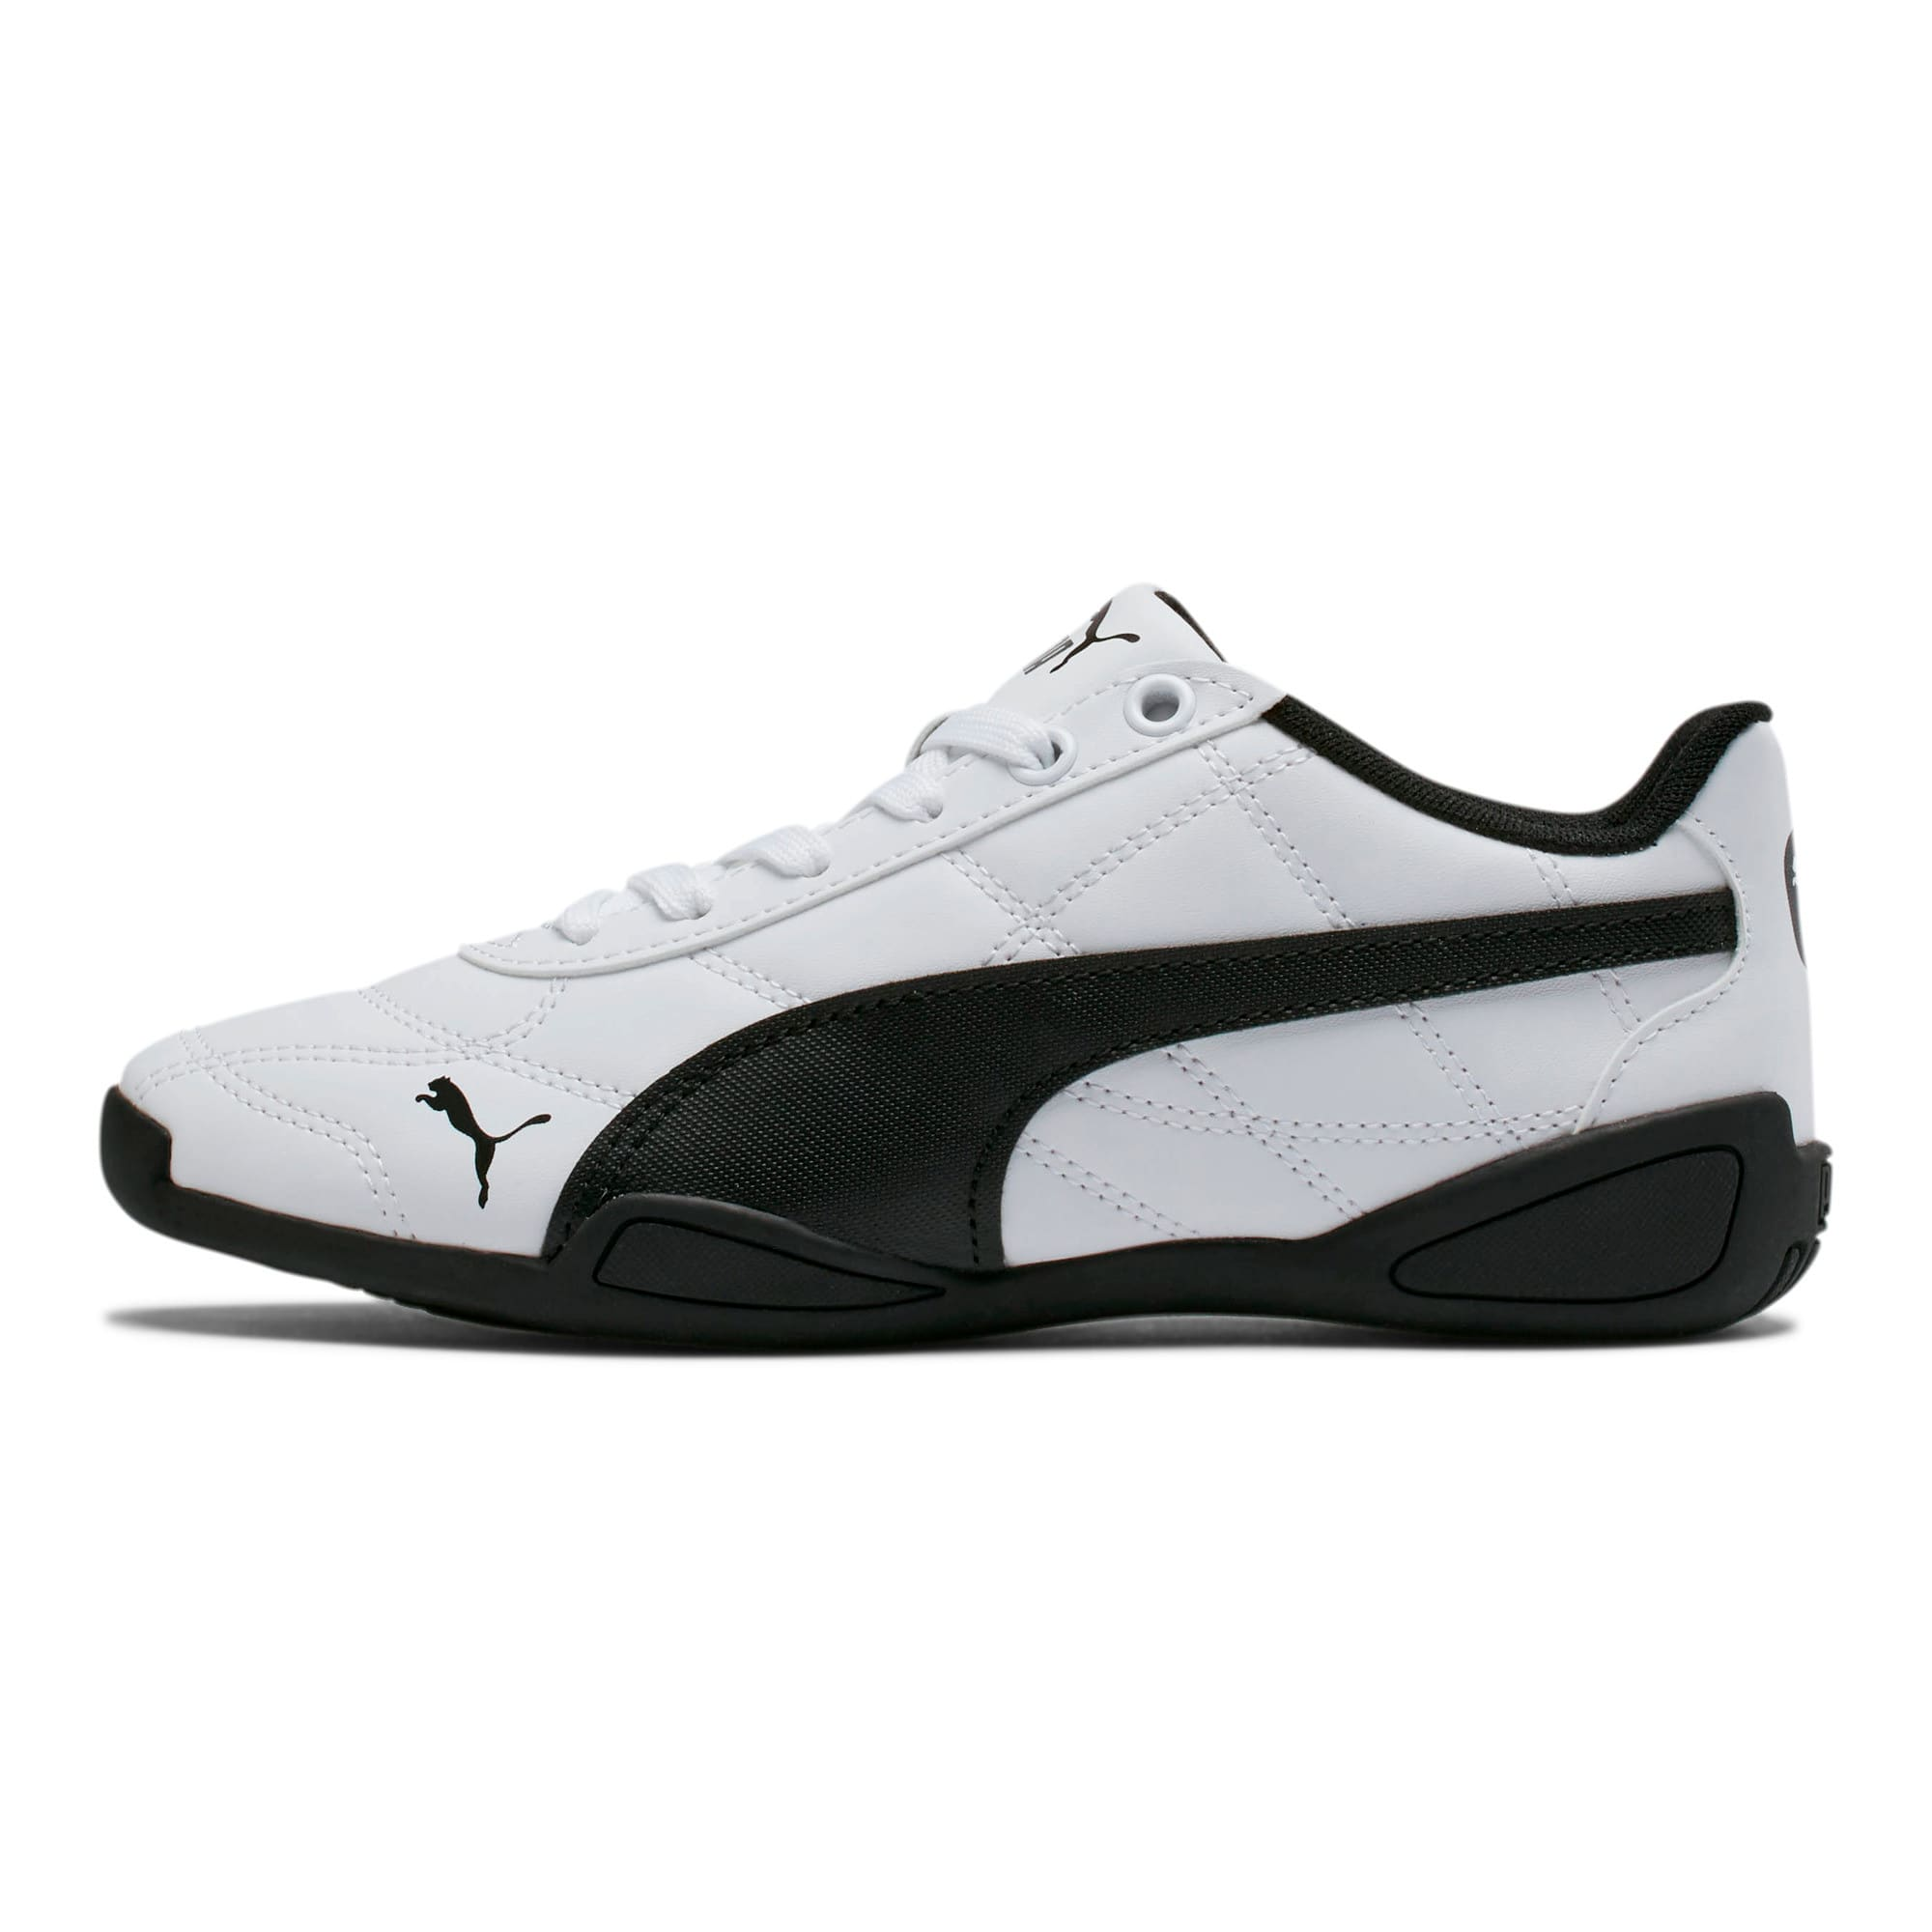 Thumbnail 1 of Tune Cat 3 Shoes JR, Puma White-Puma Black, medium